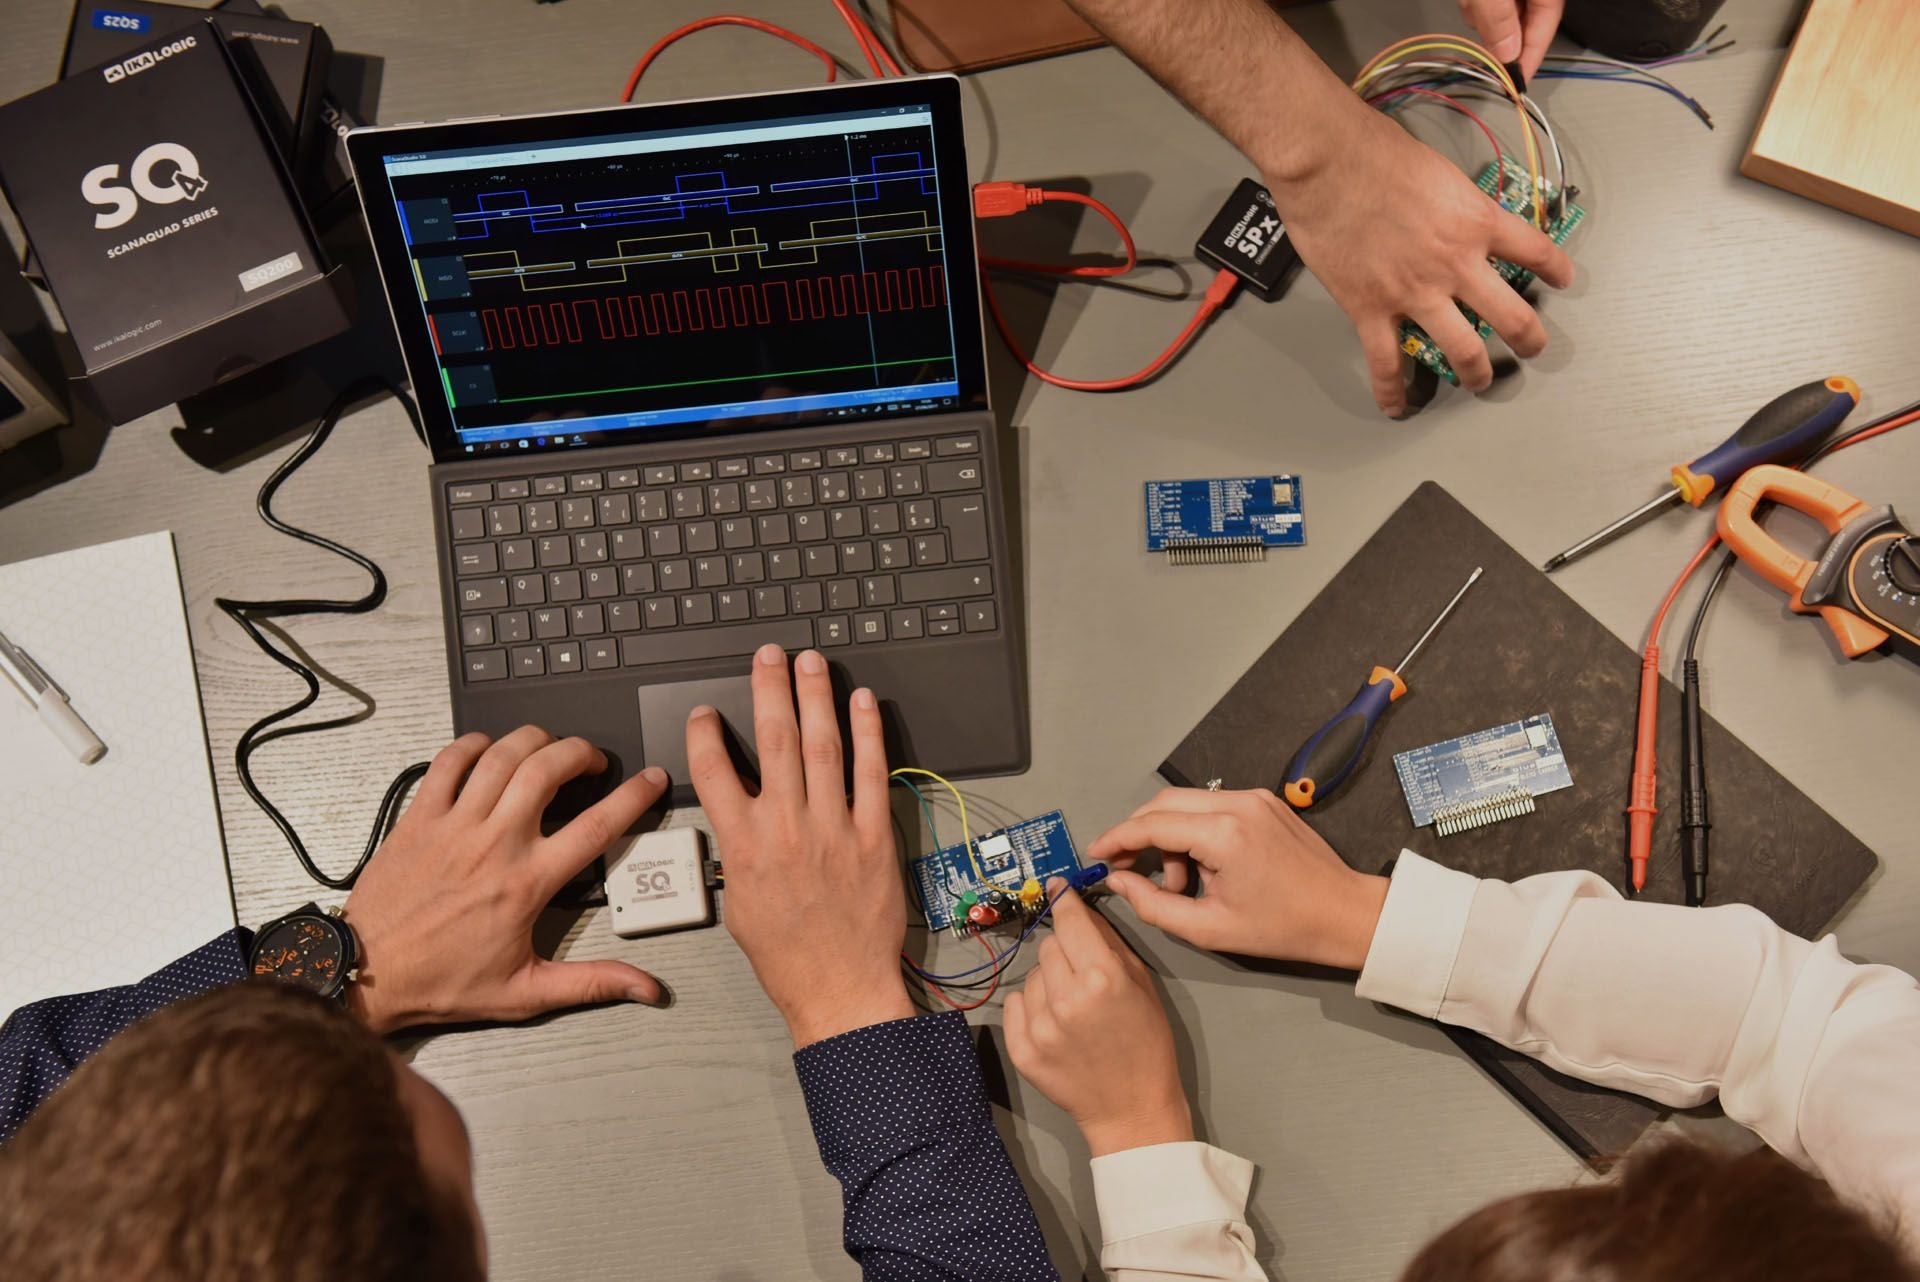 Electronic Engineers working with logic analyzers, signal generator. Serial communication packets are displayed and analyzed on ScanaStudio software